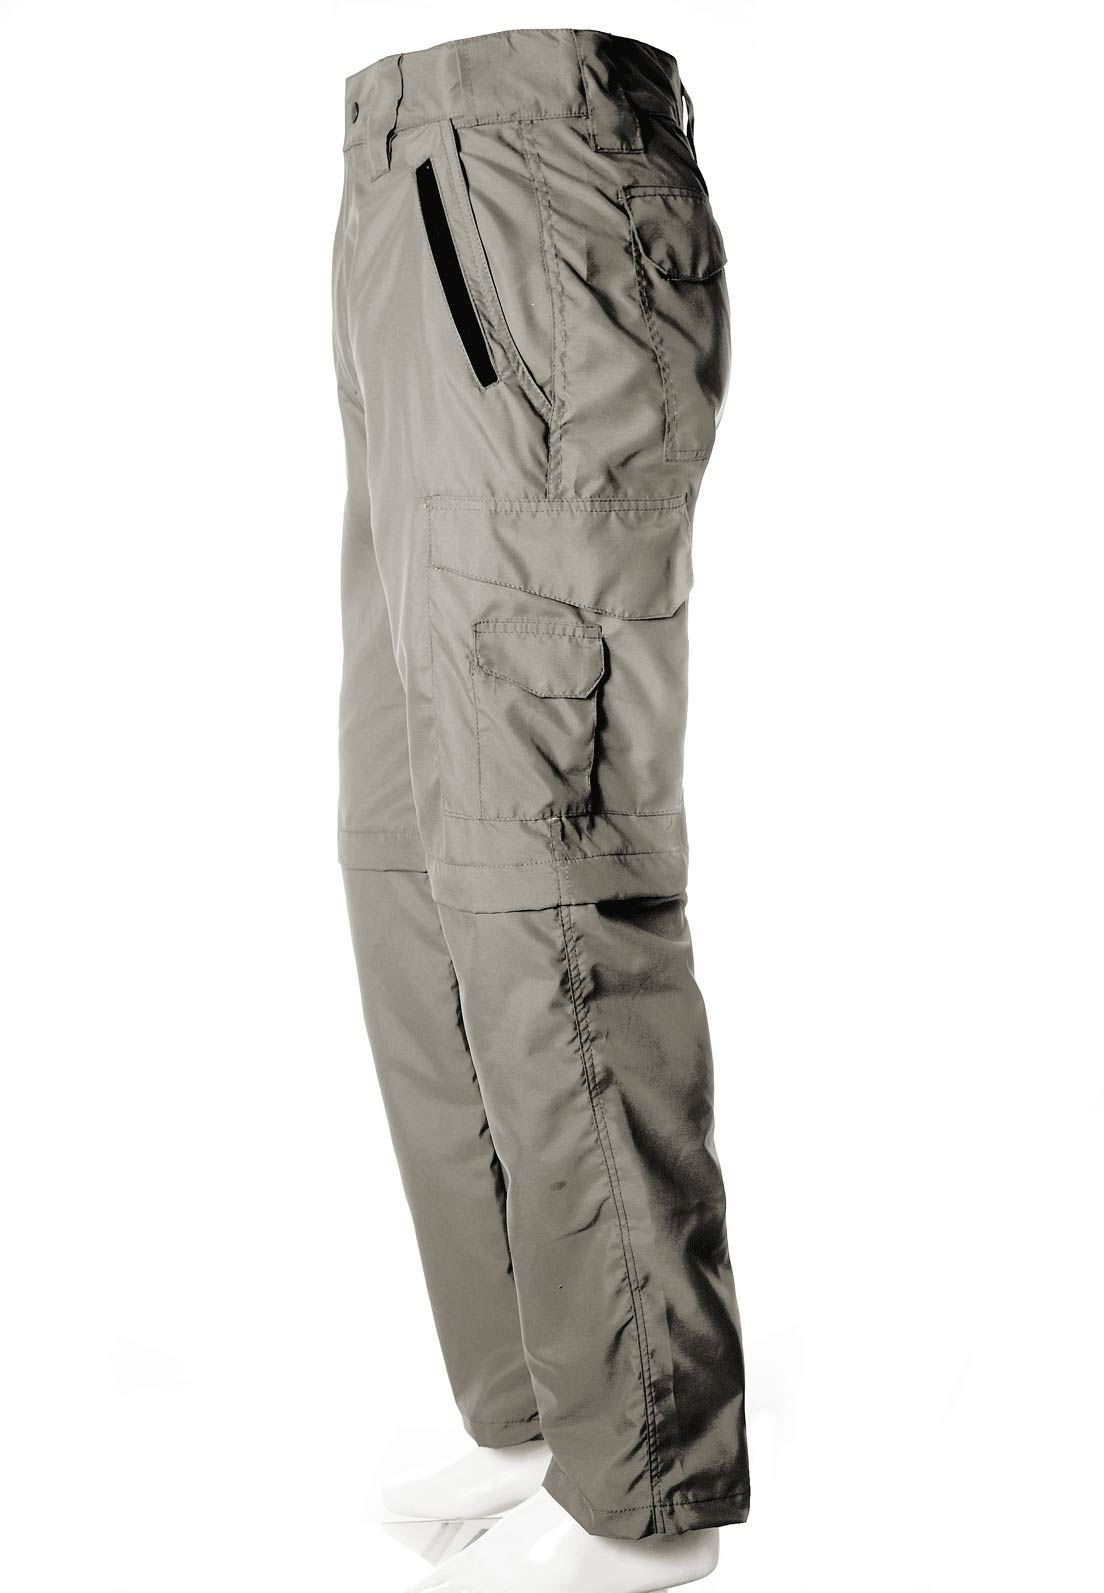 Calça-Bermuda Cores Bege UltraLight Masculina  - REAL HUNTER OUTDOORS